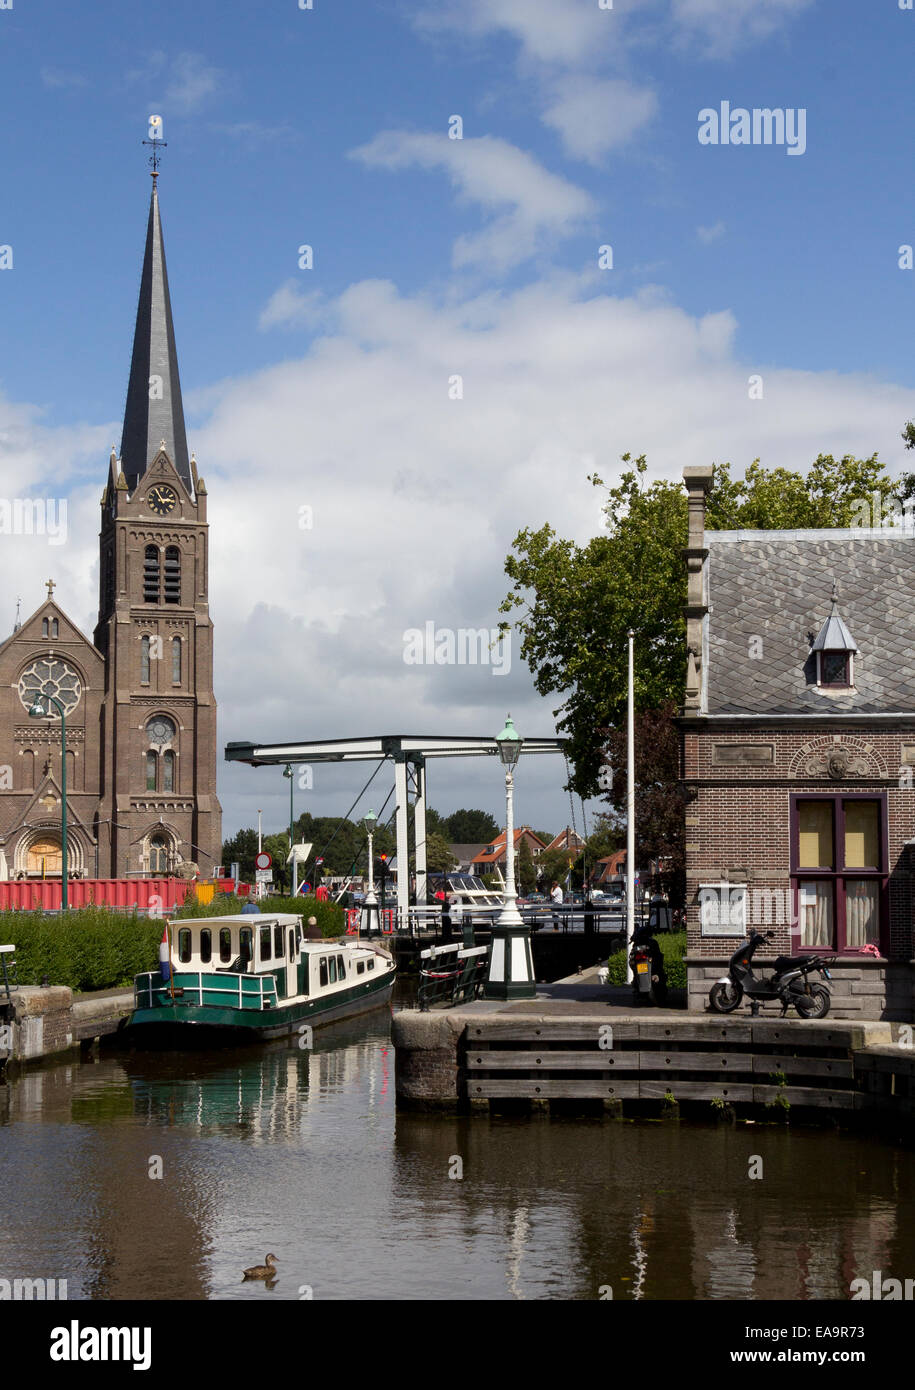 The lock and old lockkeeper's building in the town of Leidschendam on the fringes of Den Hague, Zuid Holland, - Stock Image